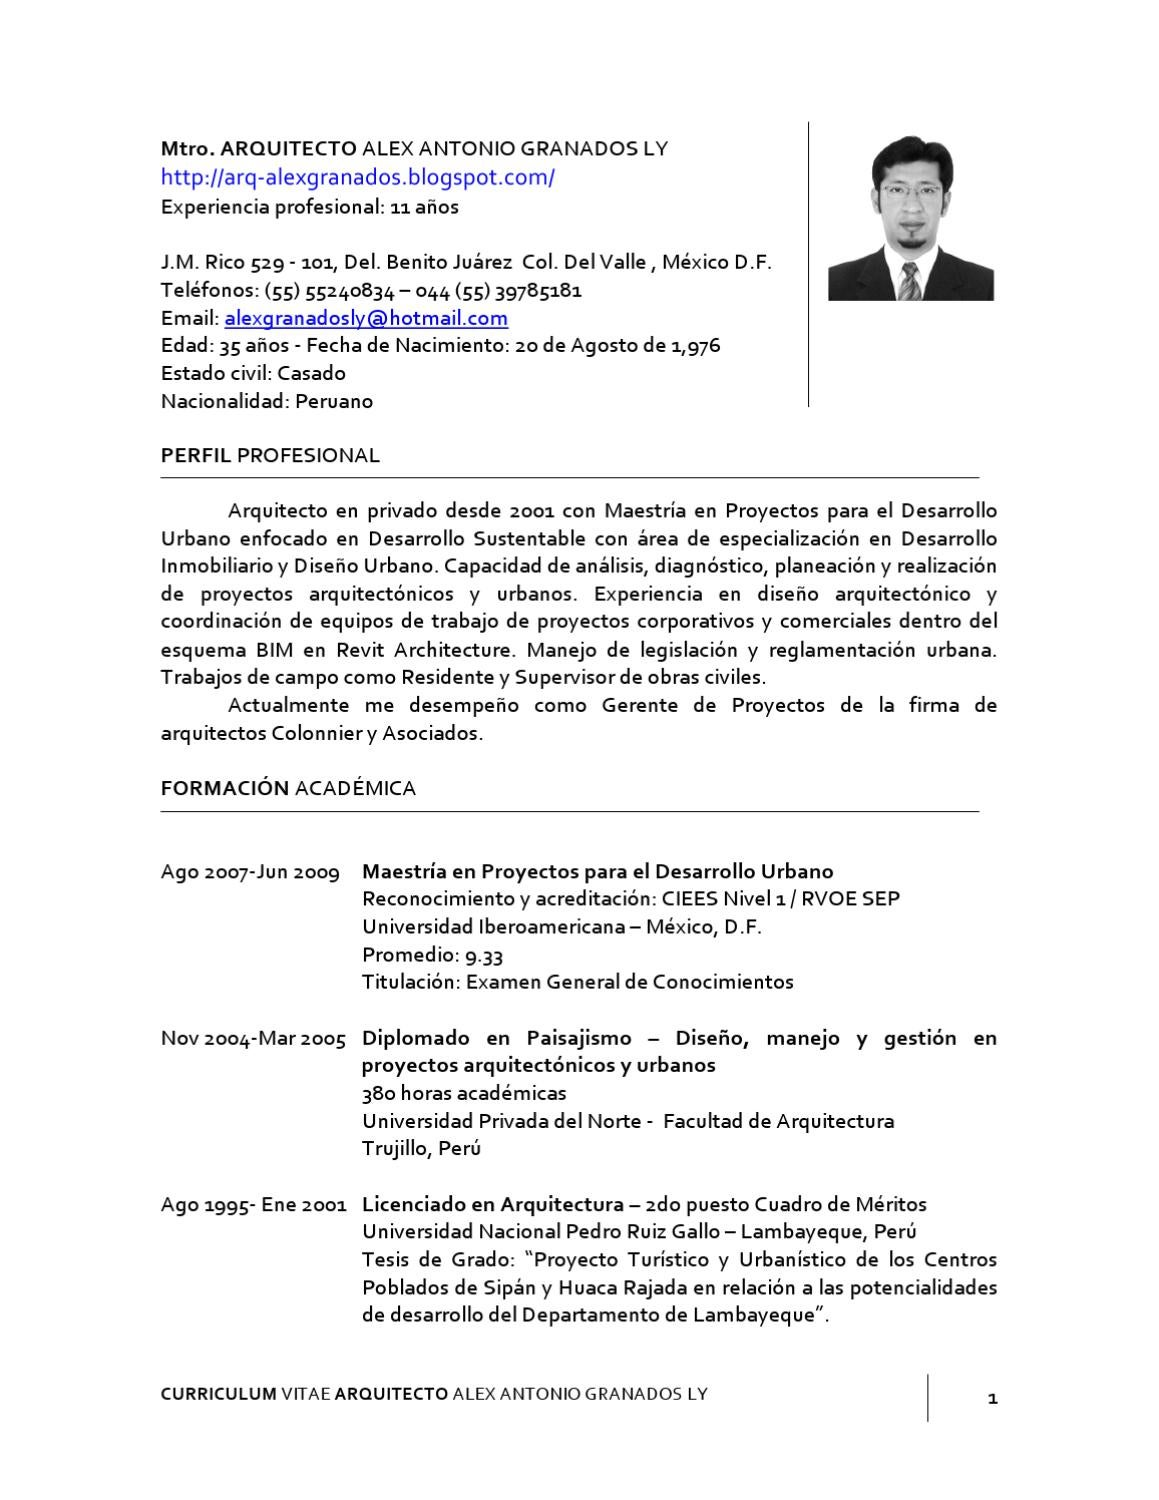 CURRICULUM VITAE by Alex Antonio Granados Ly - issuu